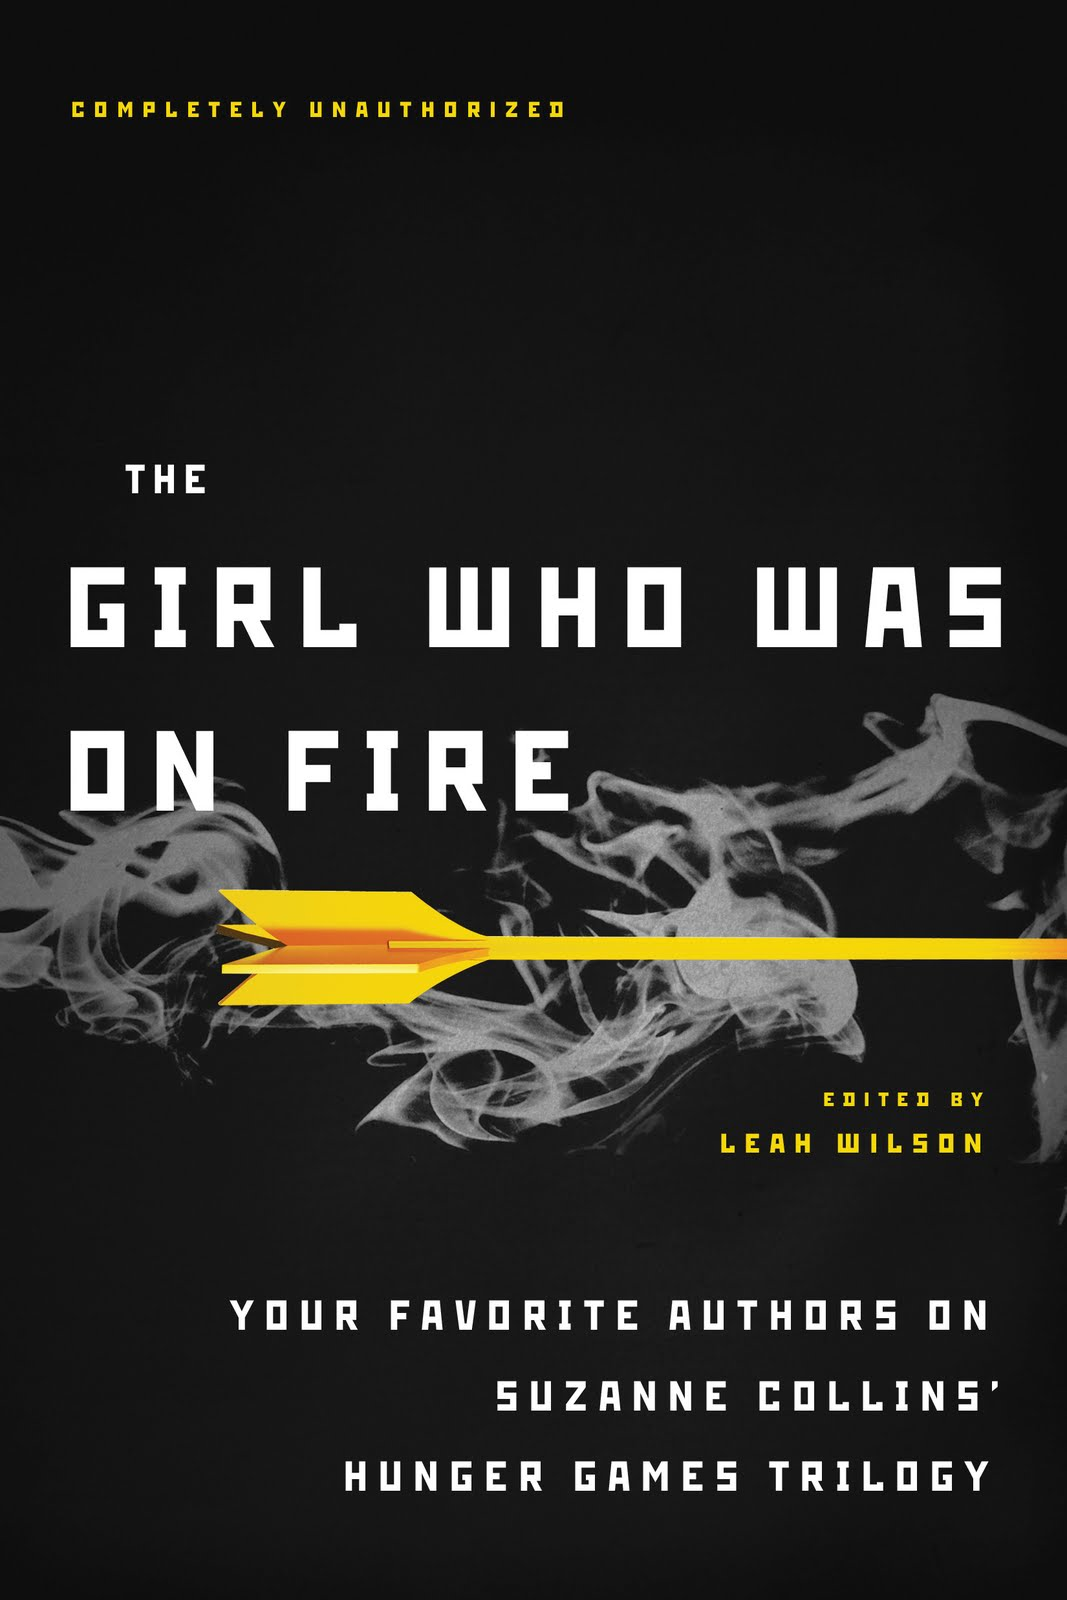 a literary odyssey 2012 thoughts on the girl who was on fire edited by leah wilson